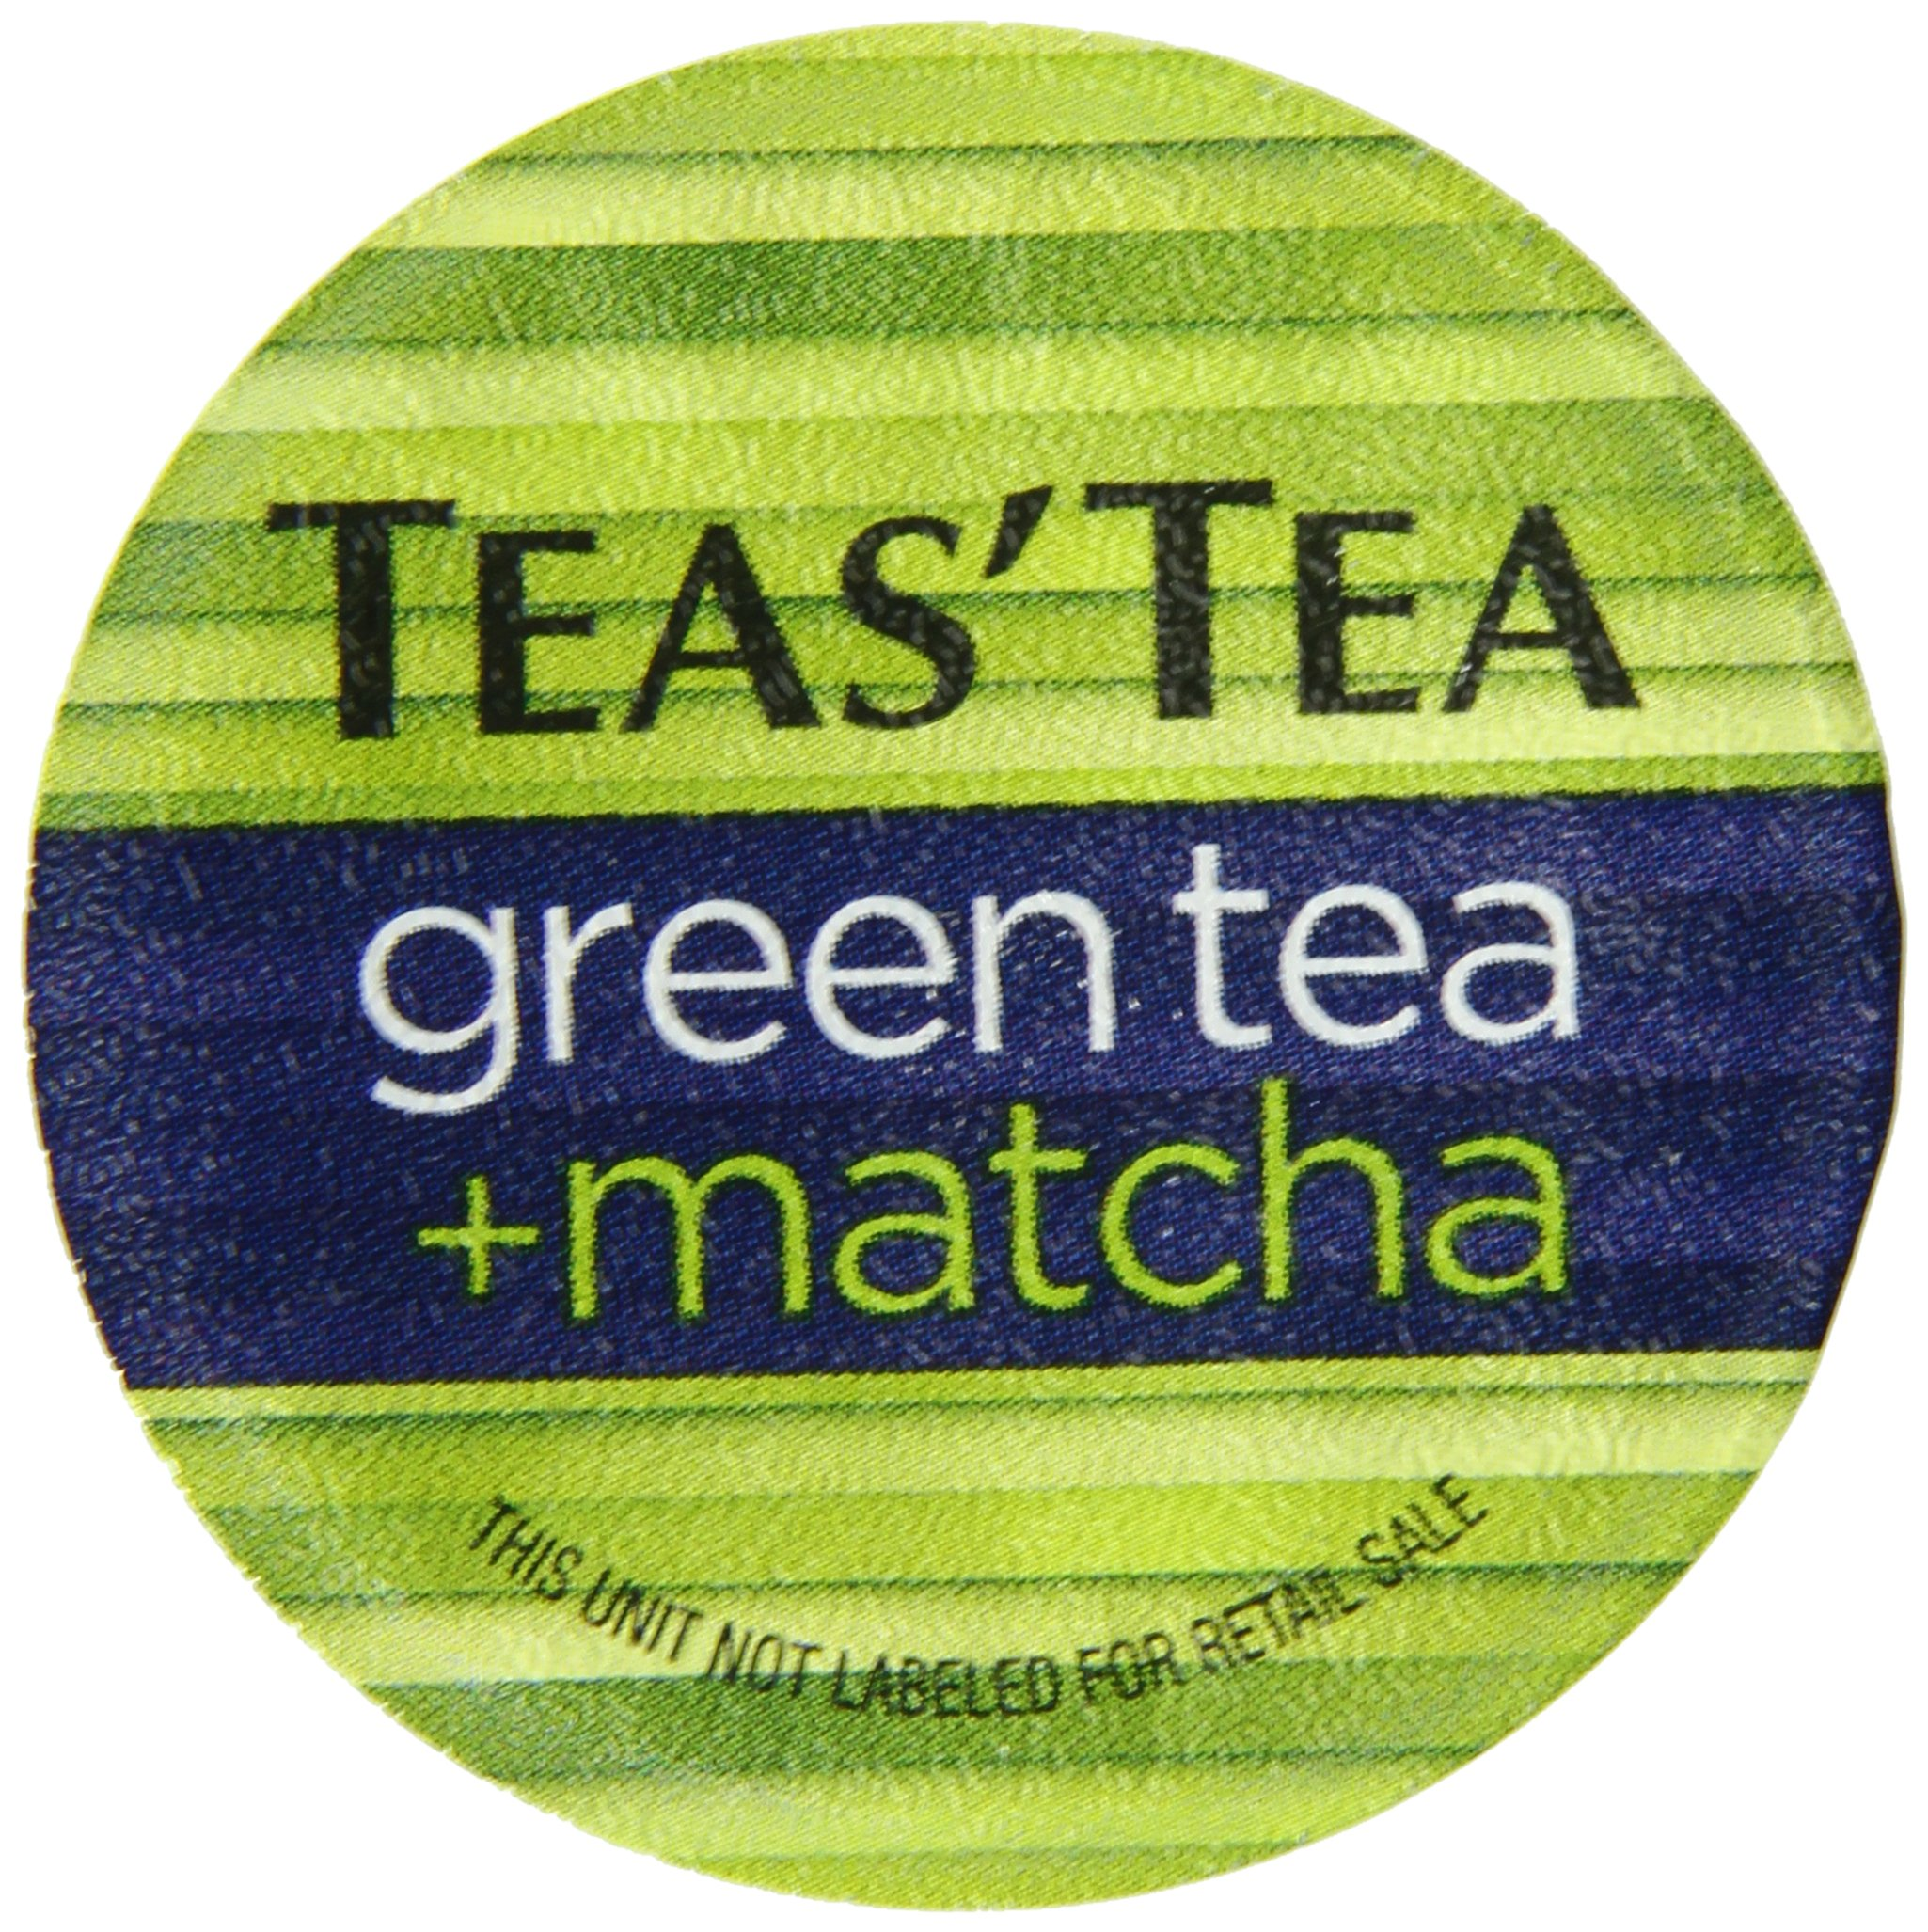 Teas' Tea Green Tea Plus Matcha, Single Serve Cups, (Pack of 12), Organic, Zero Calories, No Sugars, No Artificial Sweeteners, Antioxidant Rich, High in Vitamin C